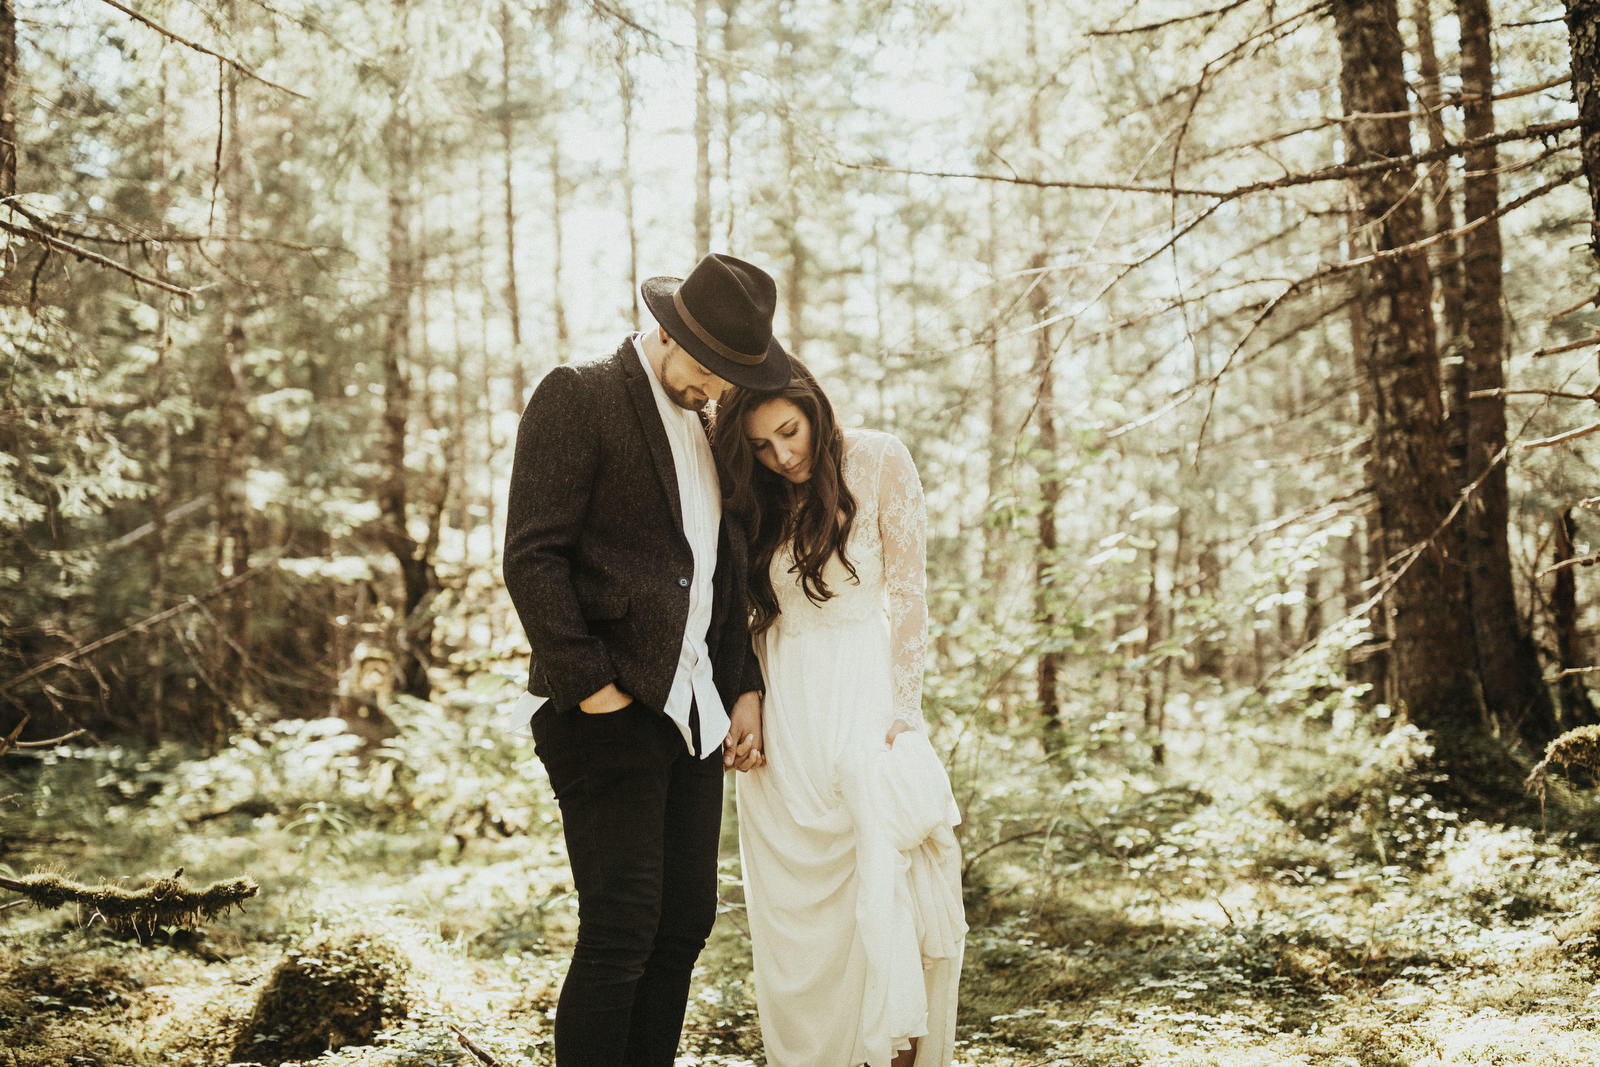 athena-and-camron-alaska-elopement-wedding-inspiration-india-earl-athena-grace-glacier-lagoon-wedding30